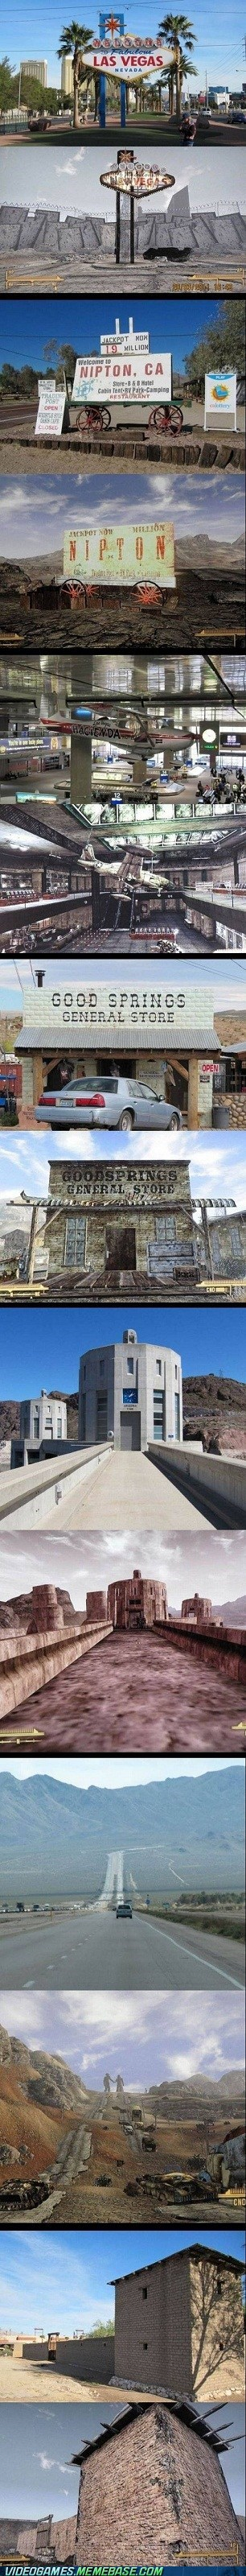 Why New Vegas is Awesome